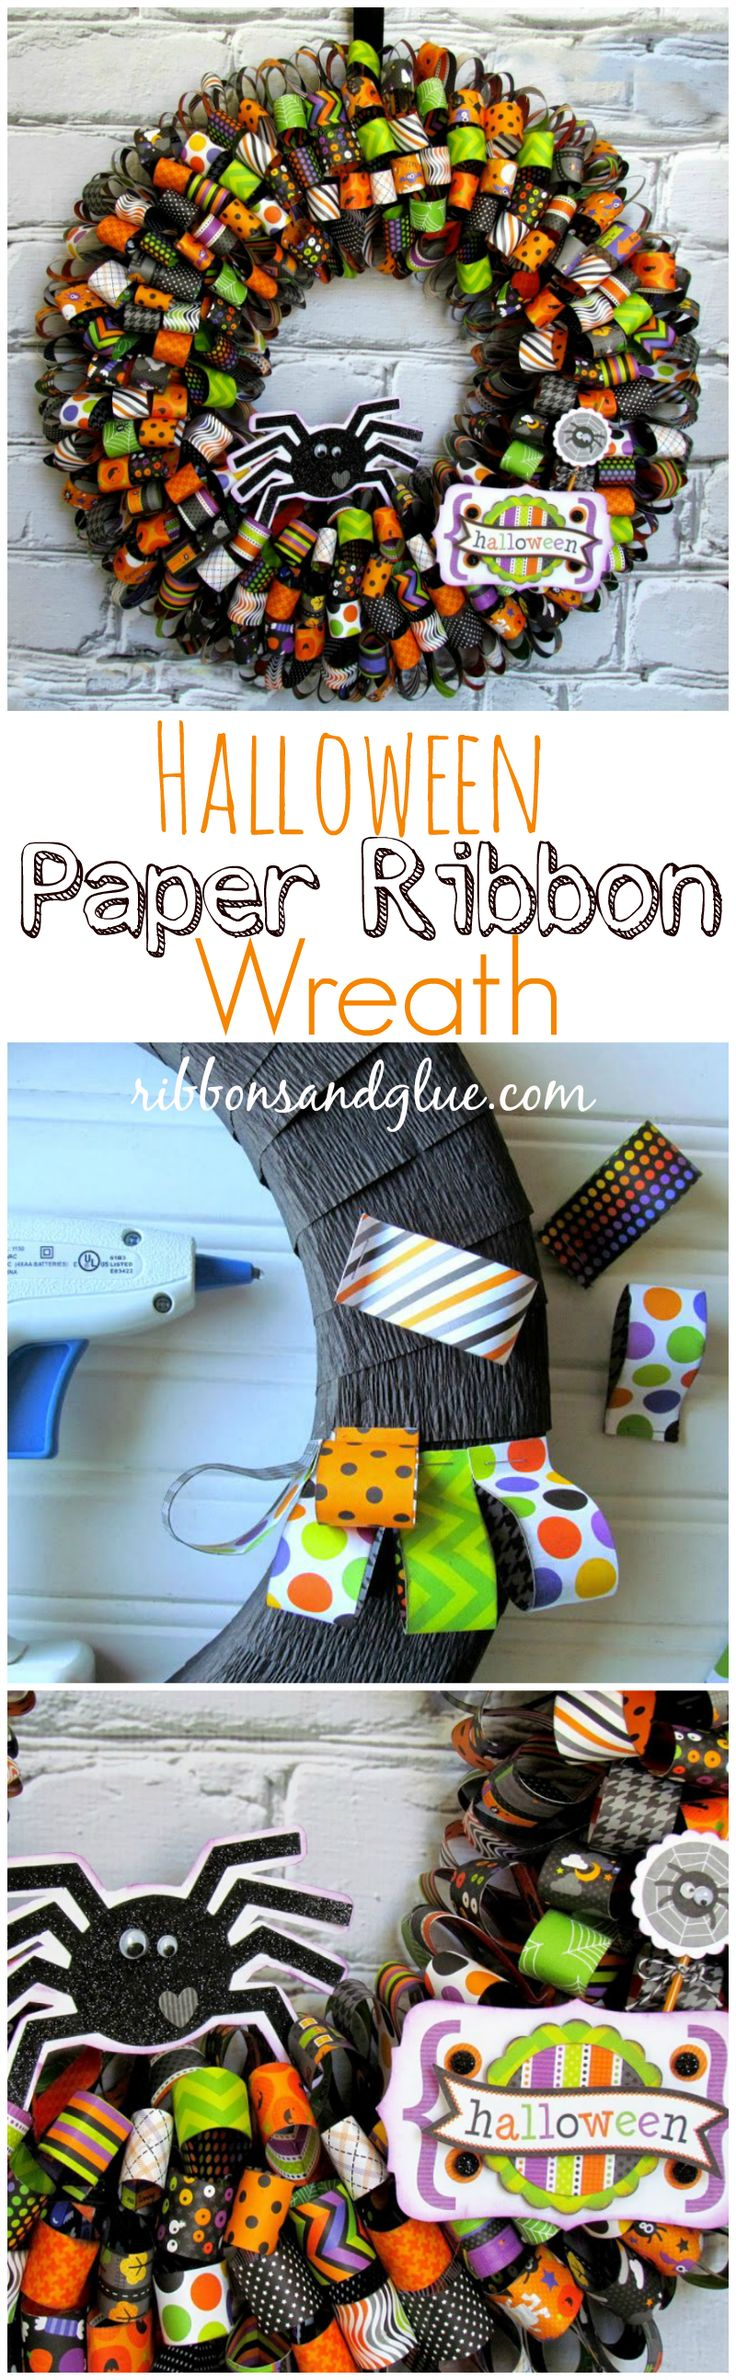 best ideas about halloween paper crafts paper 17 best ideas about halloween paper crafts paper halloween witch party and halloween art